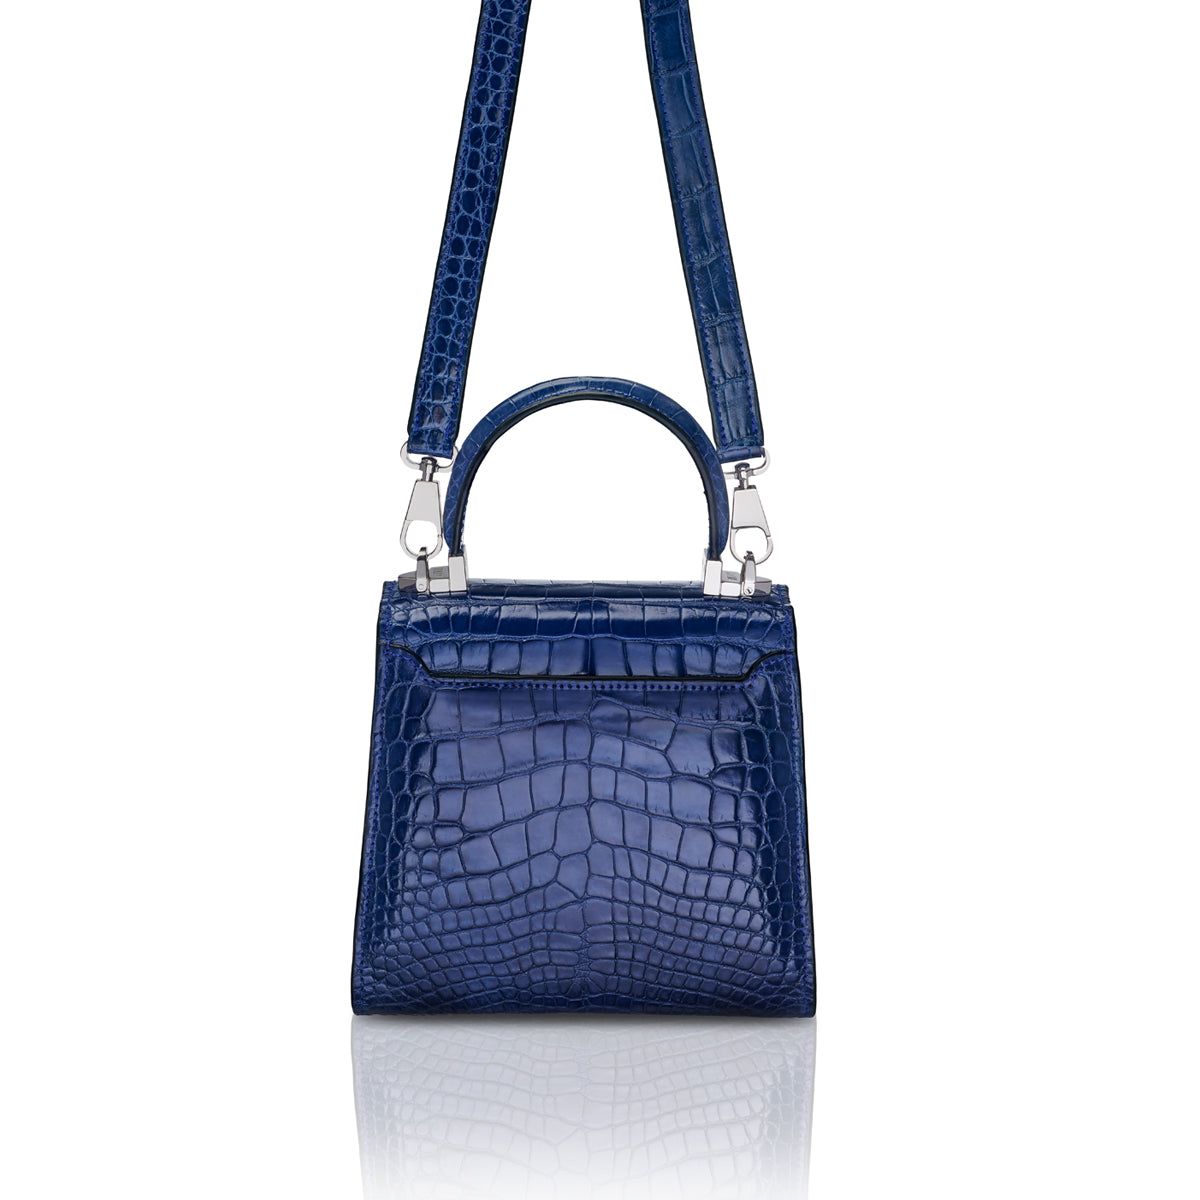 Trapezoid 1.55 Mini - Royal Blue Alligator